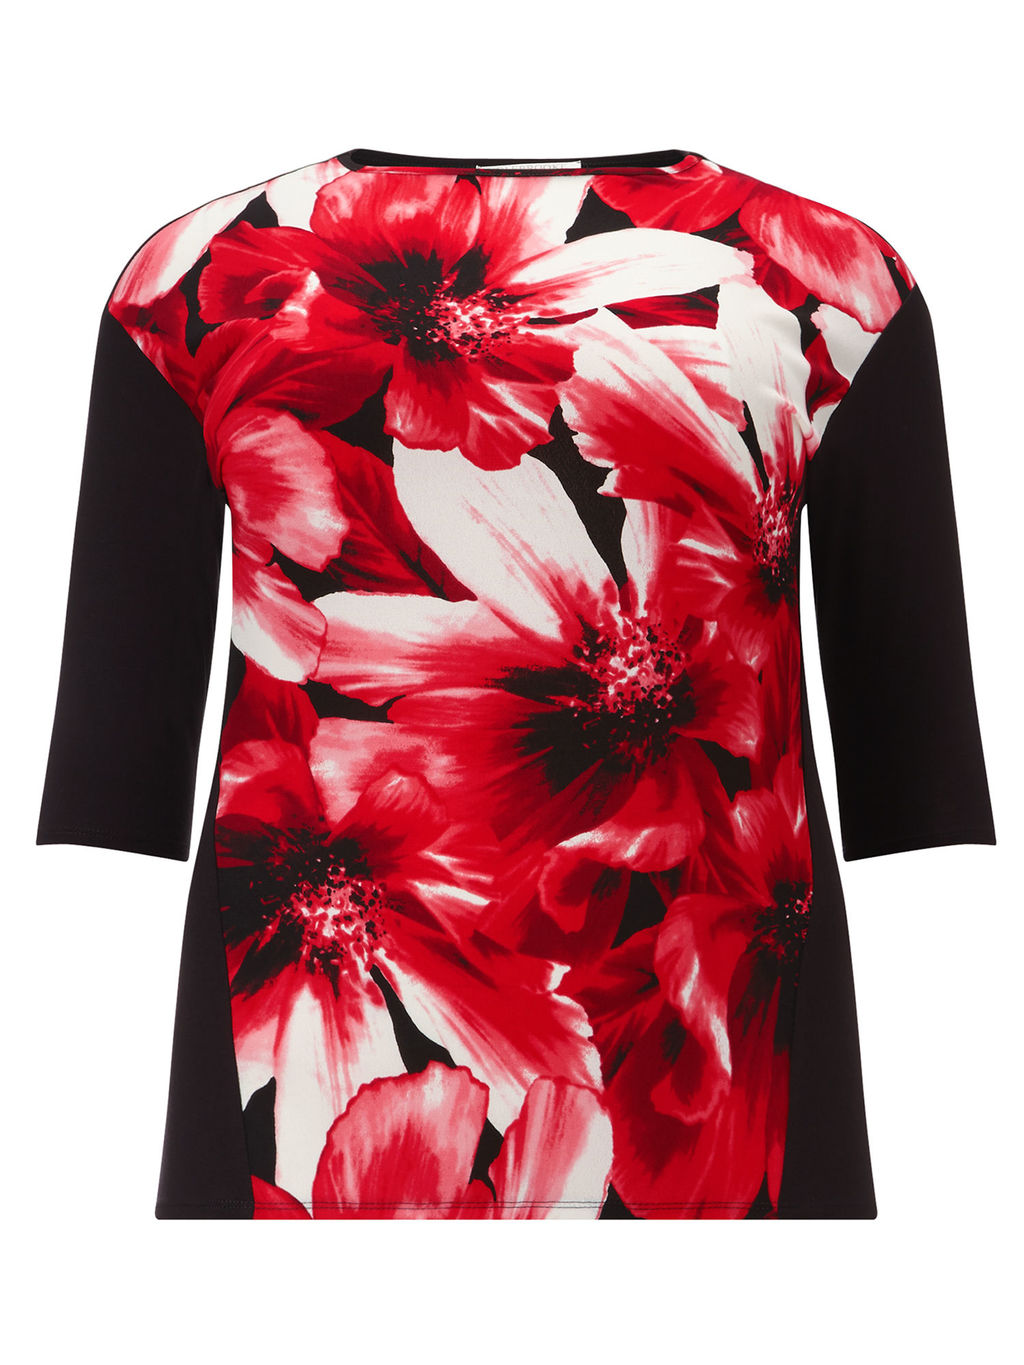 Floral Print Top, Red/Black - style: t-shirt; predominant colour: true red; secondary colour: black; occasions: casual, creative work; length: standard; fibres: polyester/polyamide - 100%; fit: body skimming; neckline: crew; sleeve length: 3/4 length; sleeve style: standard; pattern type: fabric; pattern: patterned/print; texture group: jersey - stretchy/drapey; pattern size: big & busy (top); season: a/w 2015; wardrobe: highlight